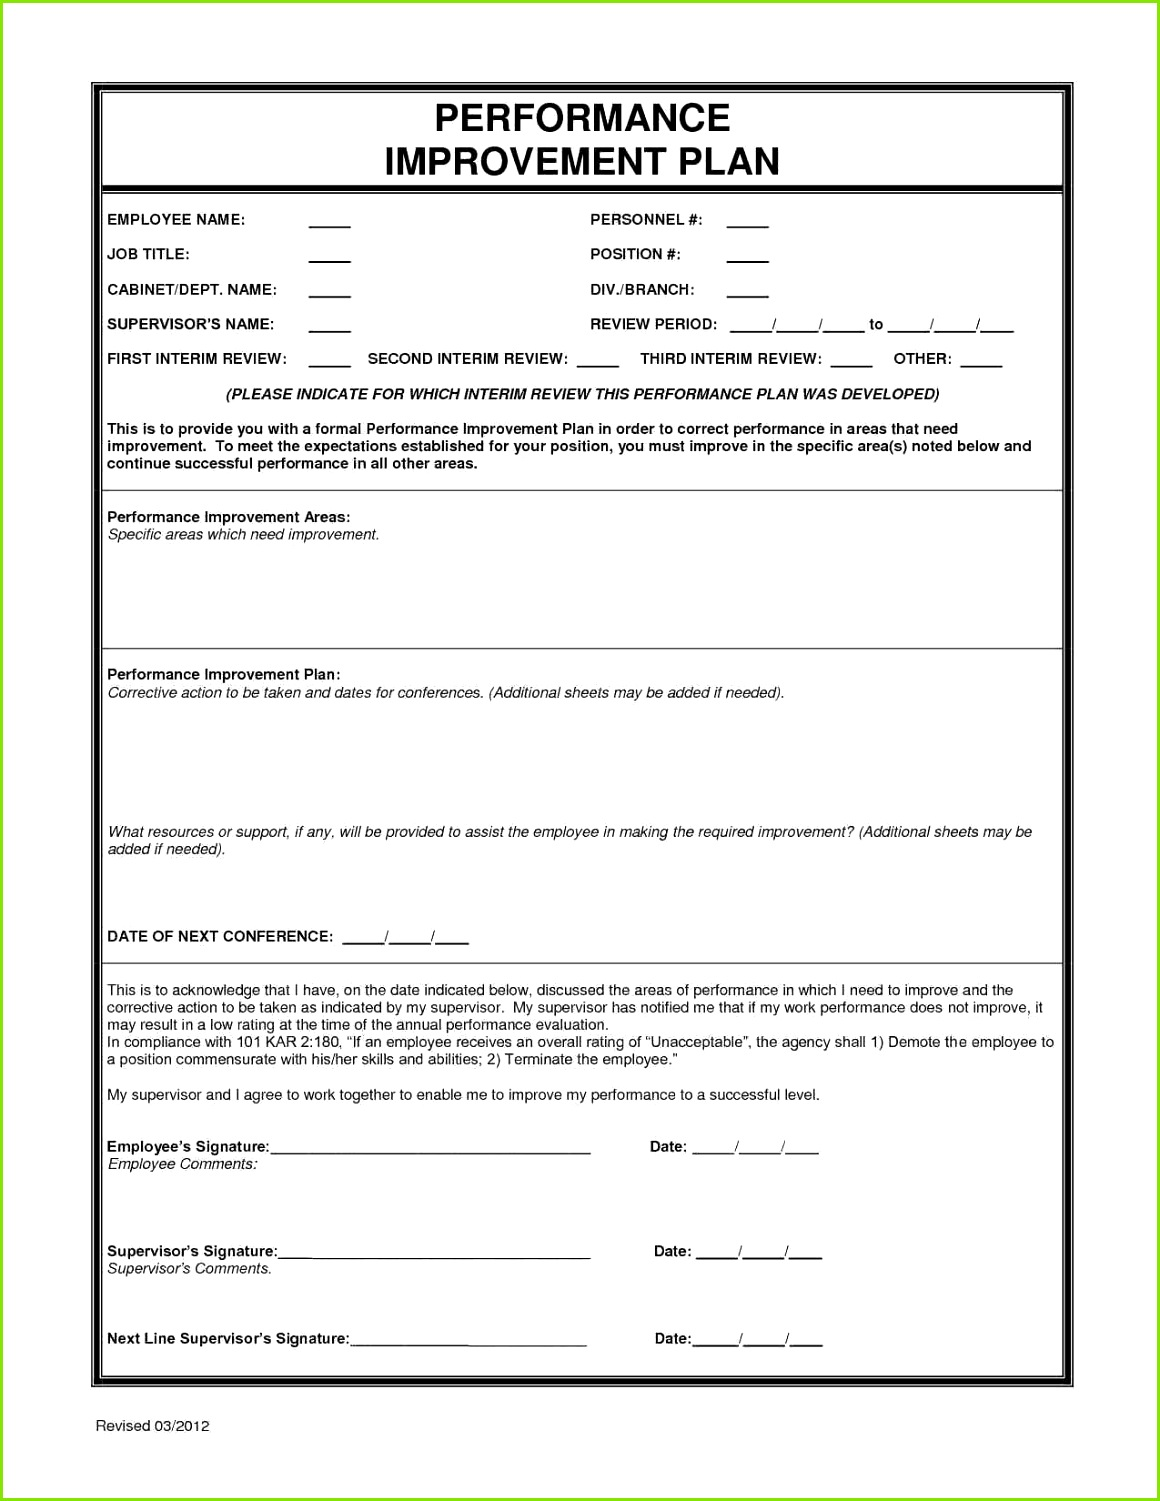 Free Staff Evaluation form Template Best Real Estate Showing Feedback form Inspirational 0d Grace Place Download